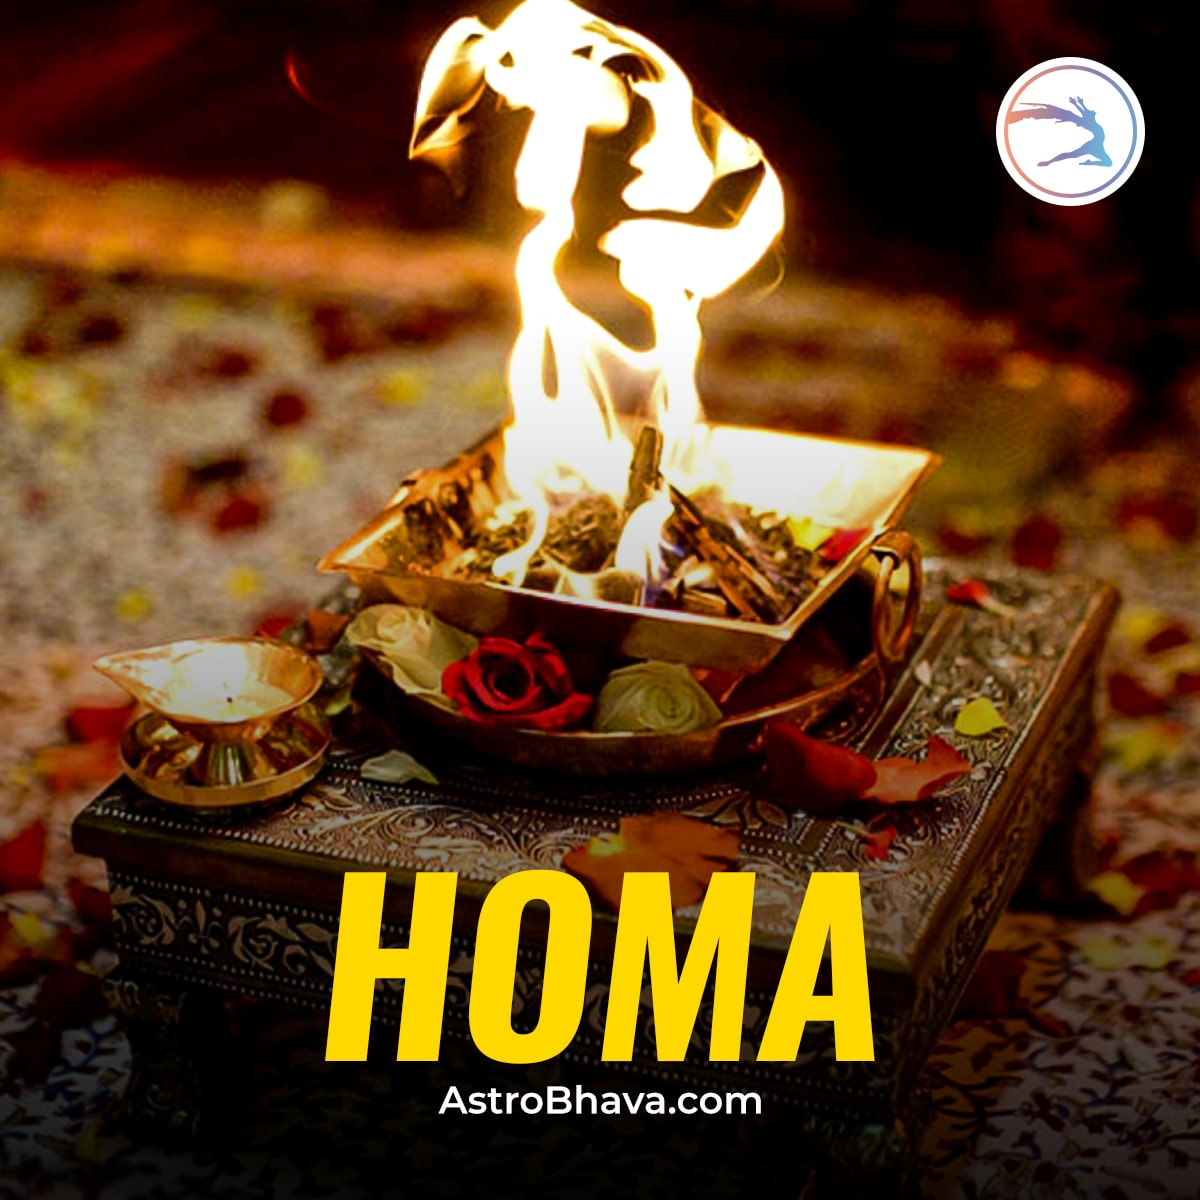 Ancient Indian Vedic Homa: A Digitized Religious Offering With AstroBhava